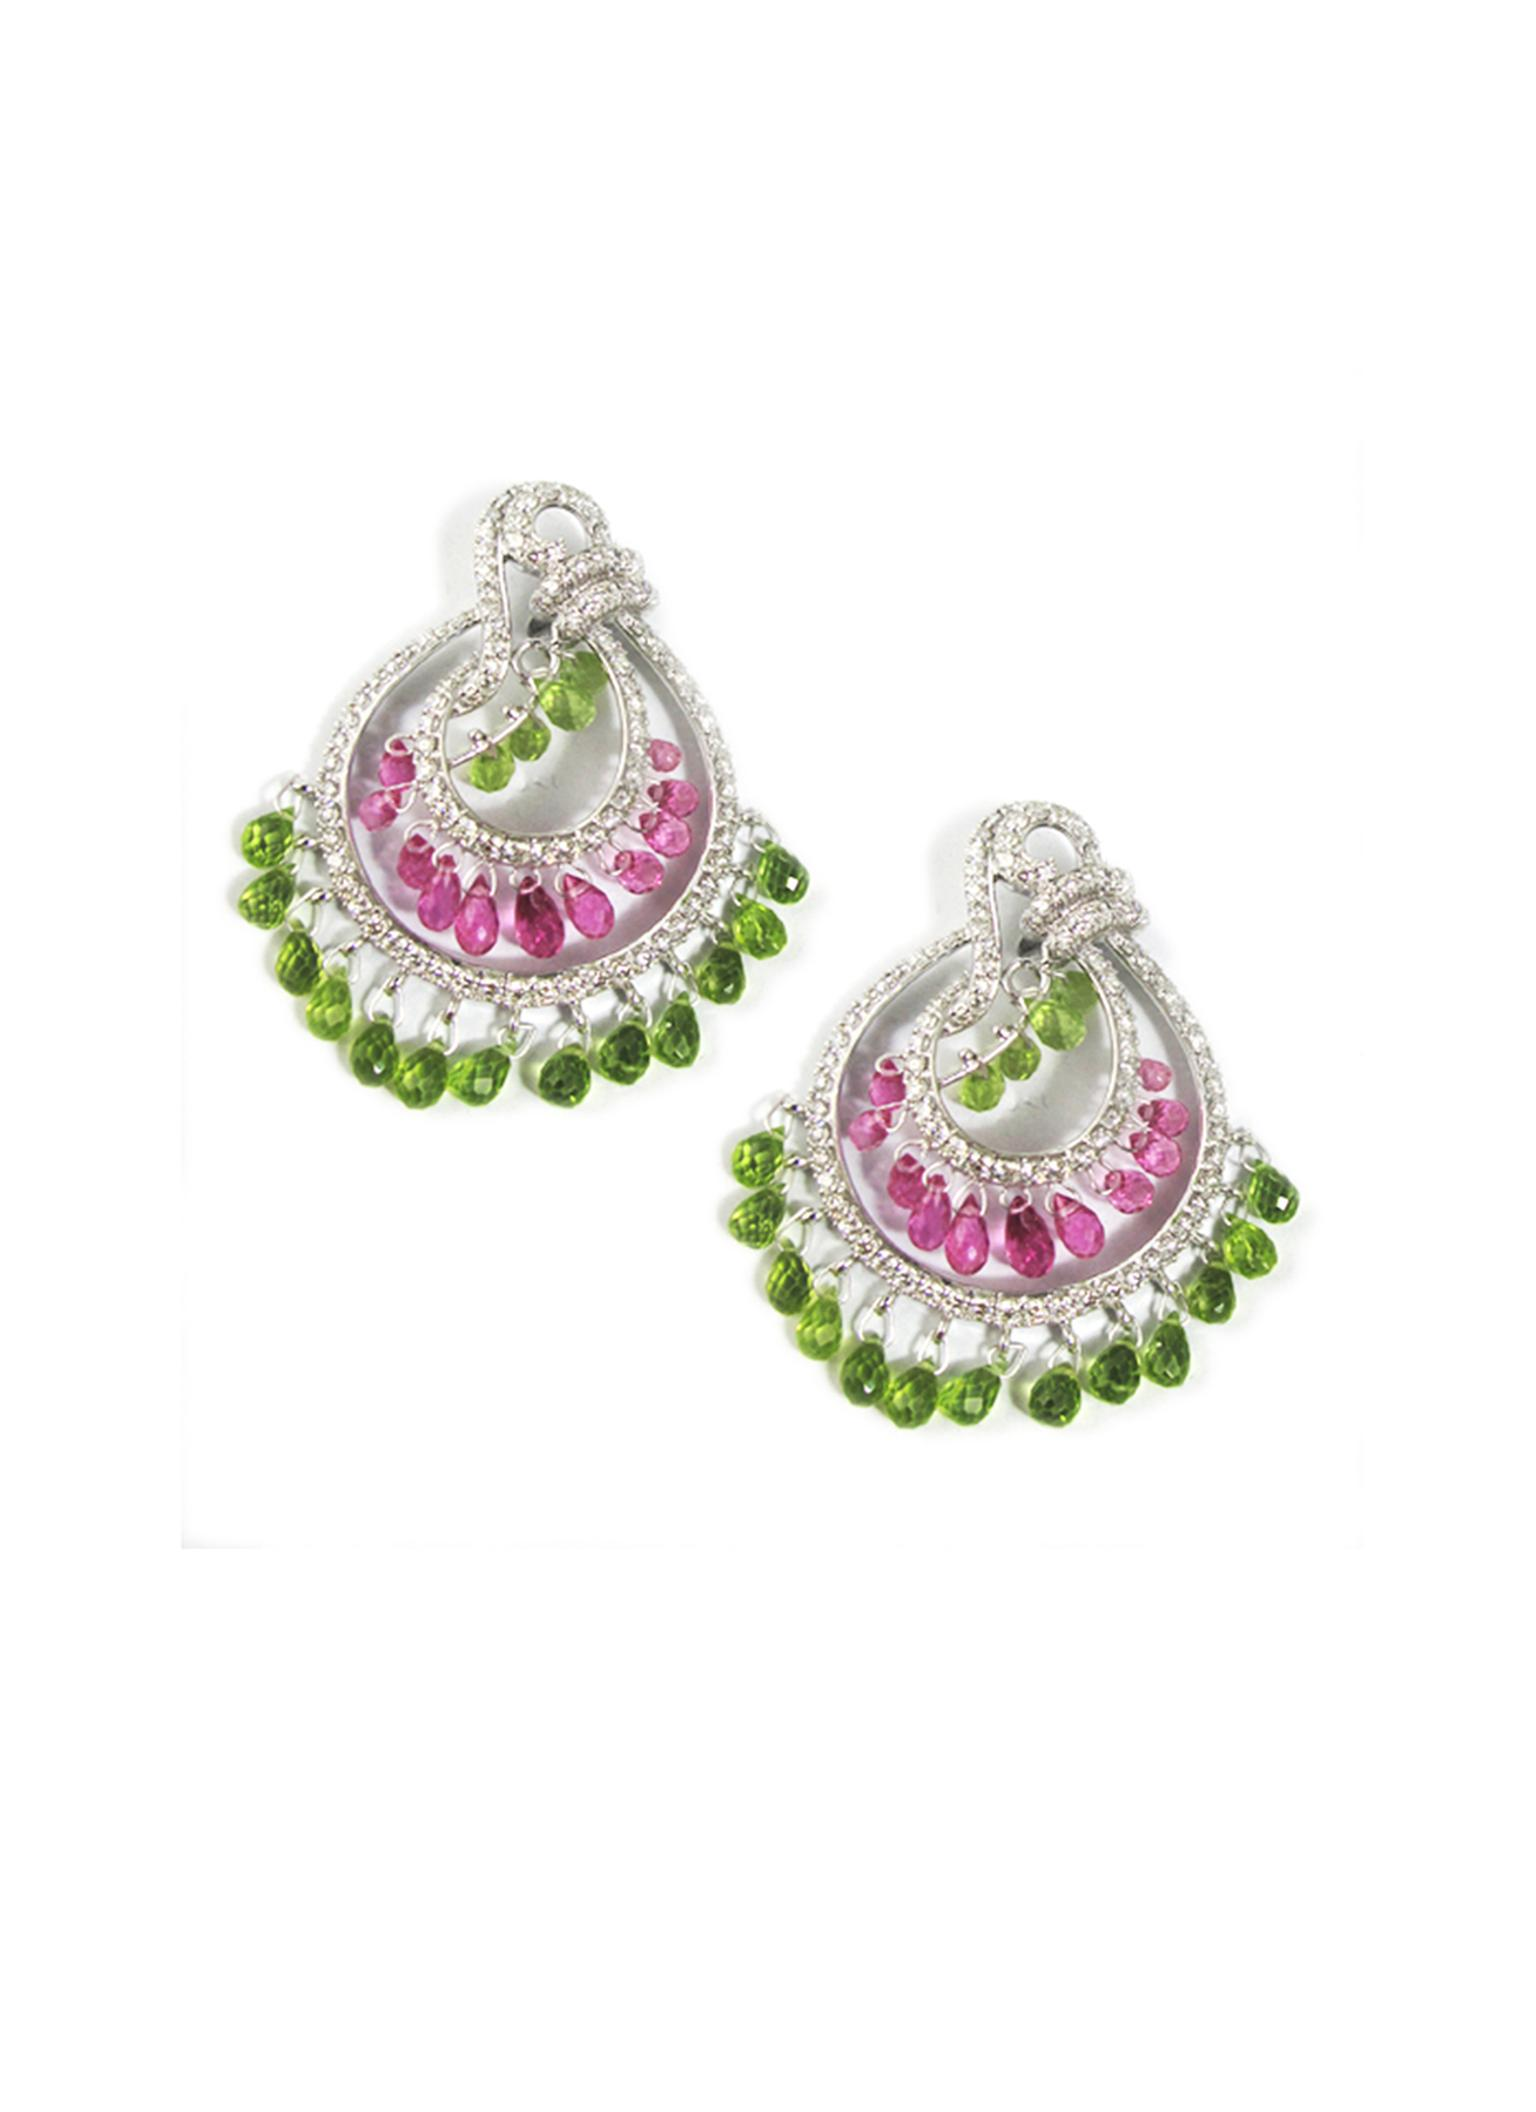 Mirari white gold earrings featuring peridot, rubellite and tourmaline drops.